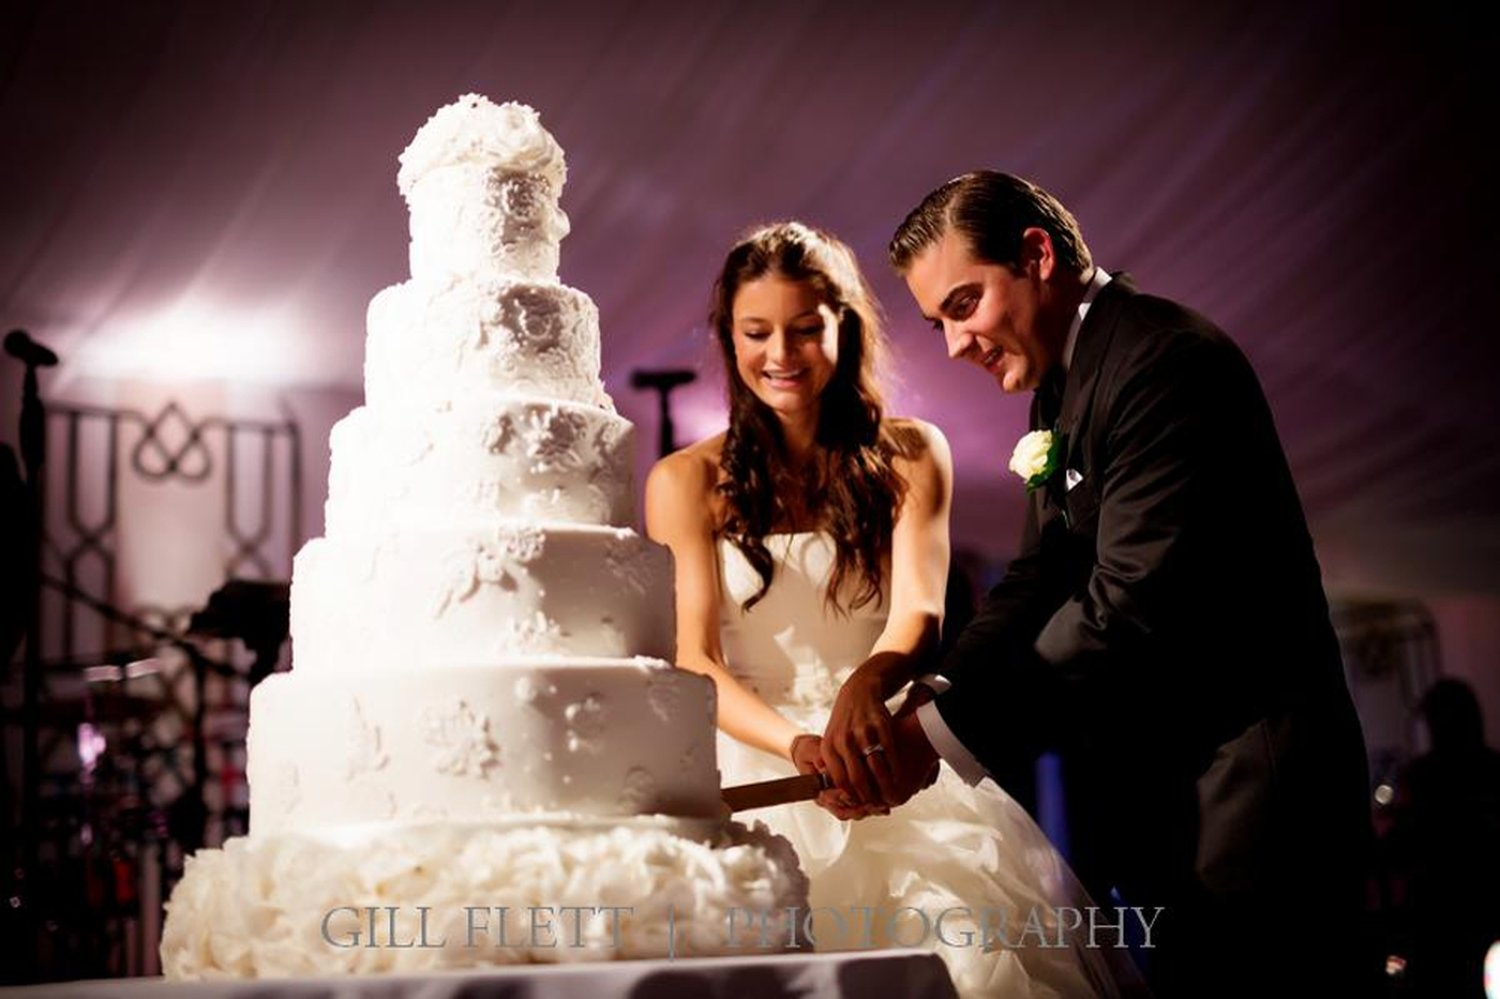 cutting-cake-peggy-porchen-wrotham-black-tie-wedding-gillflett-photo_img_0025.jpg